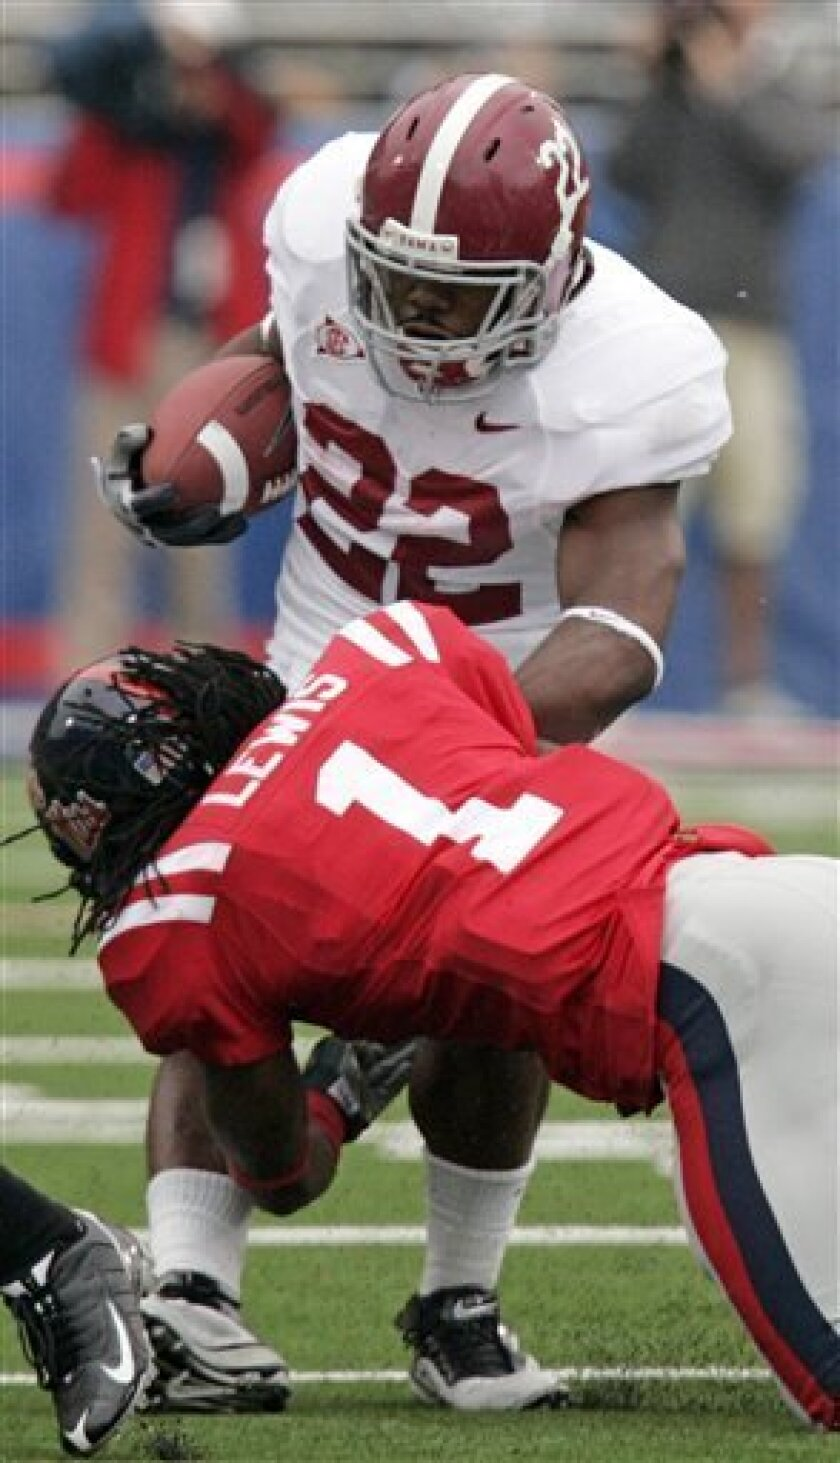 Alabama running back Mark Ingram (22) is tackled by Mississippi safety Kendrick Lewis (1) during the first quarter of an NCAA college football game in Oxford, Miss., Saturday, Oct. 10, 2009. (AP Photo/Rogelio V. Solis)